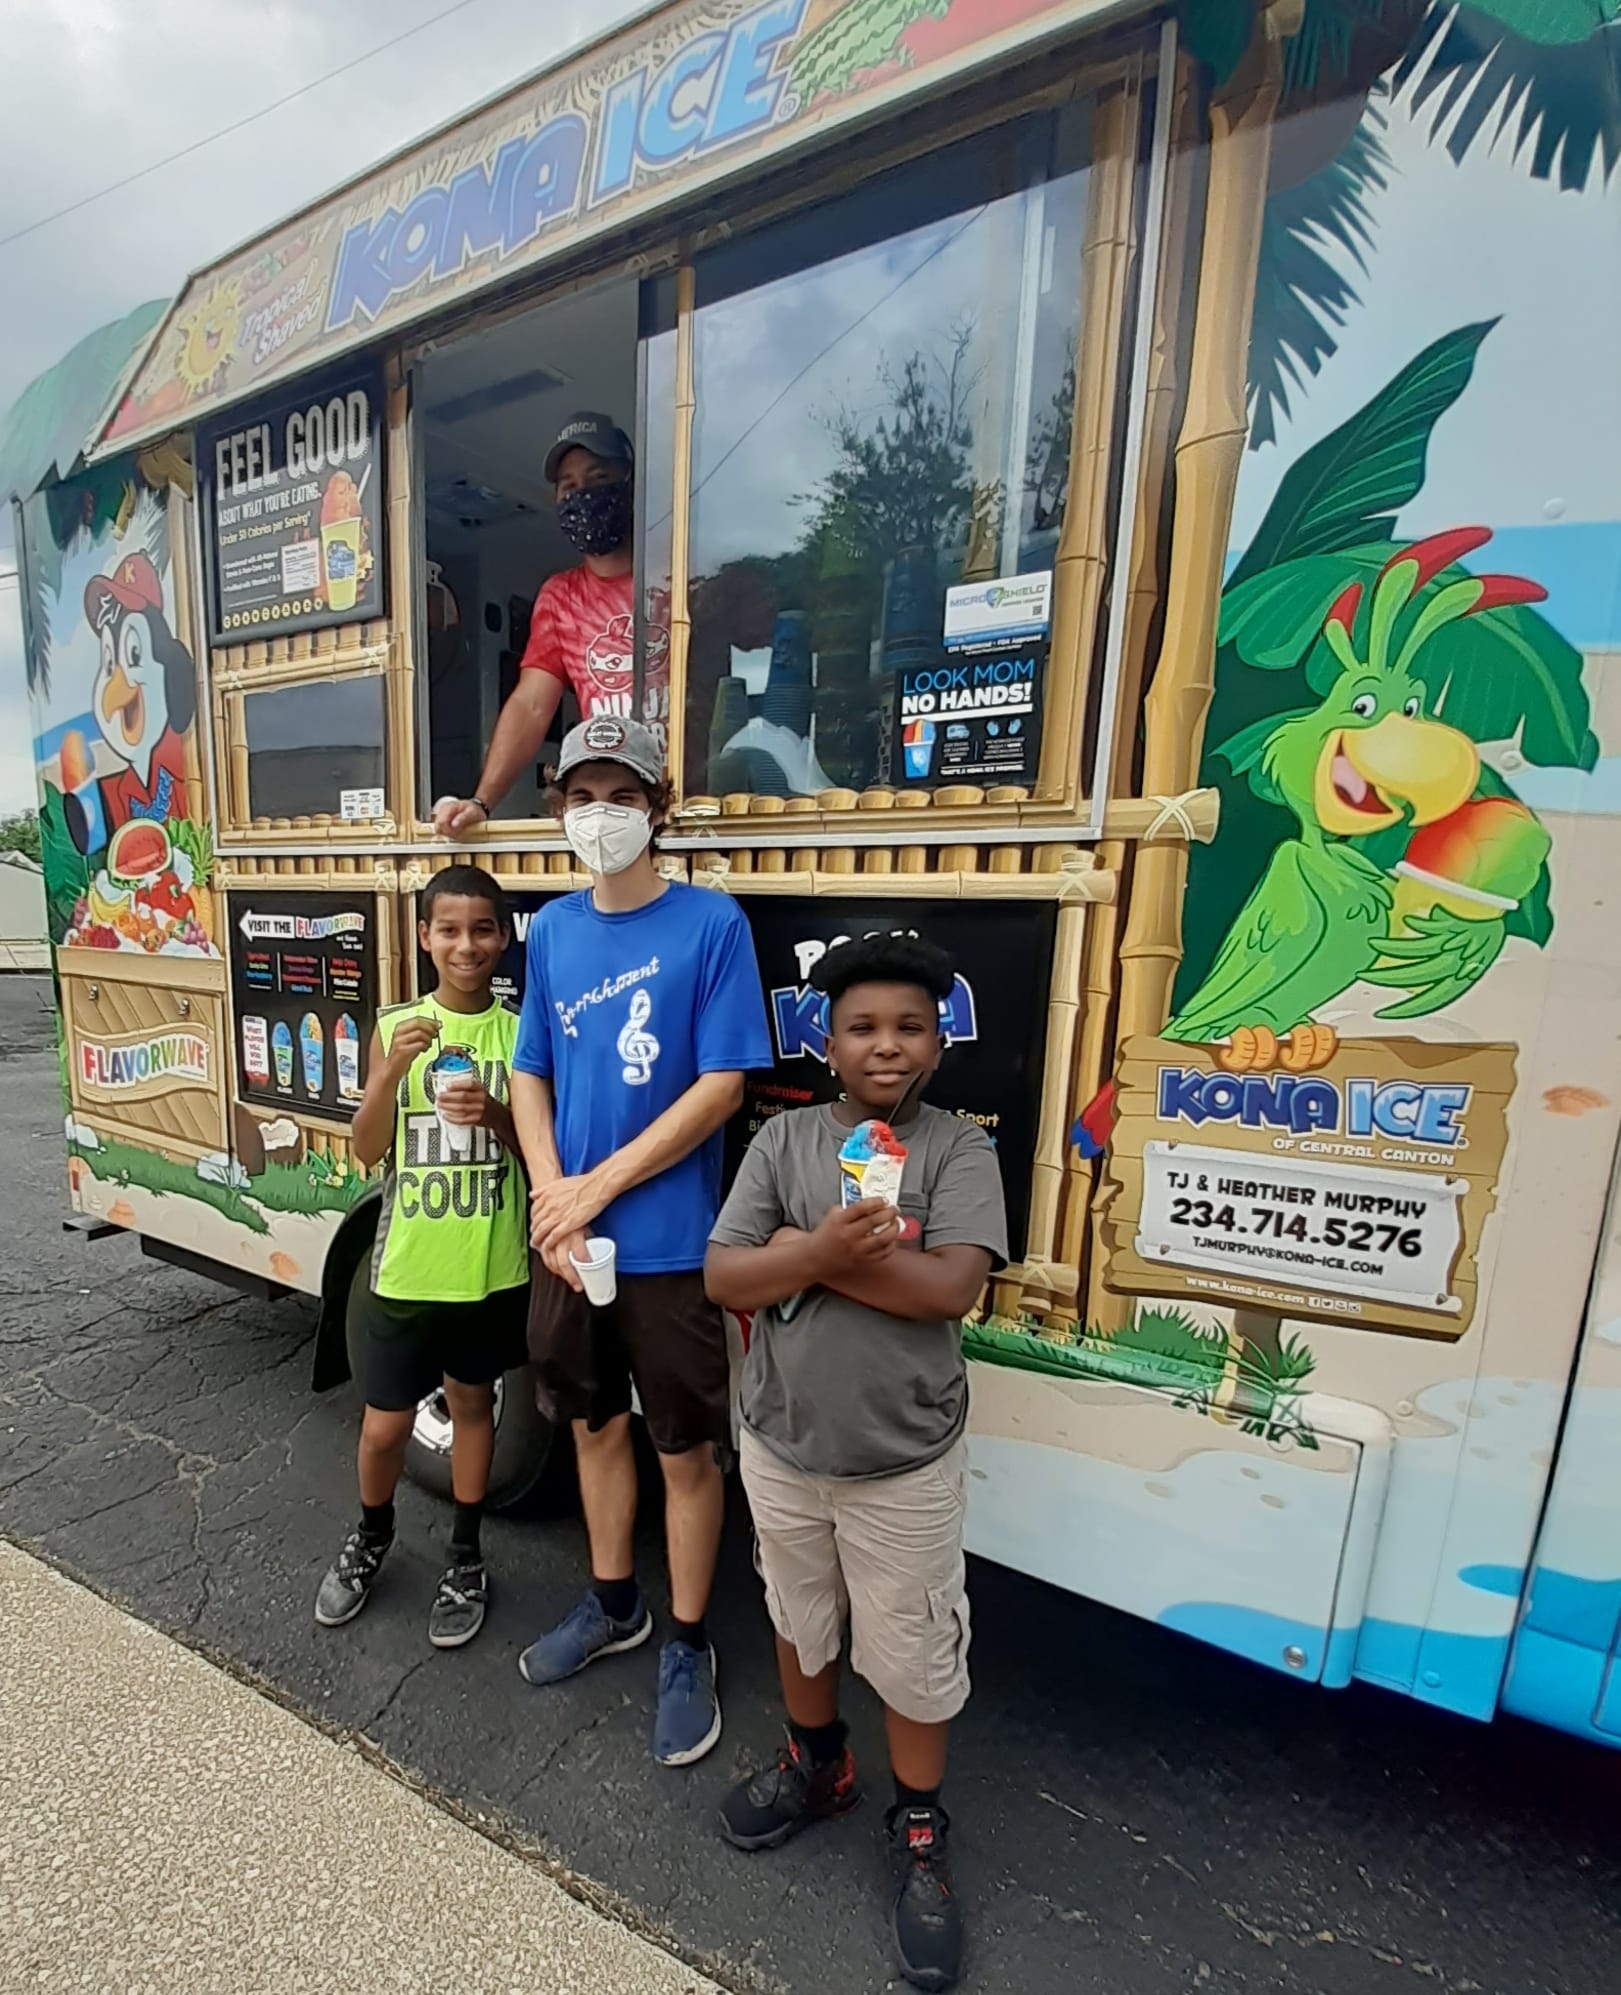 Kona ice Truck Fine Arts Summer Camp